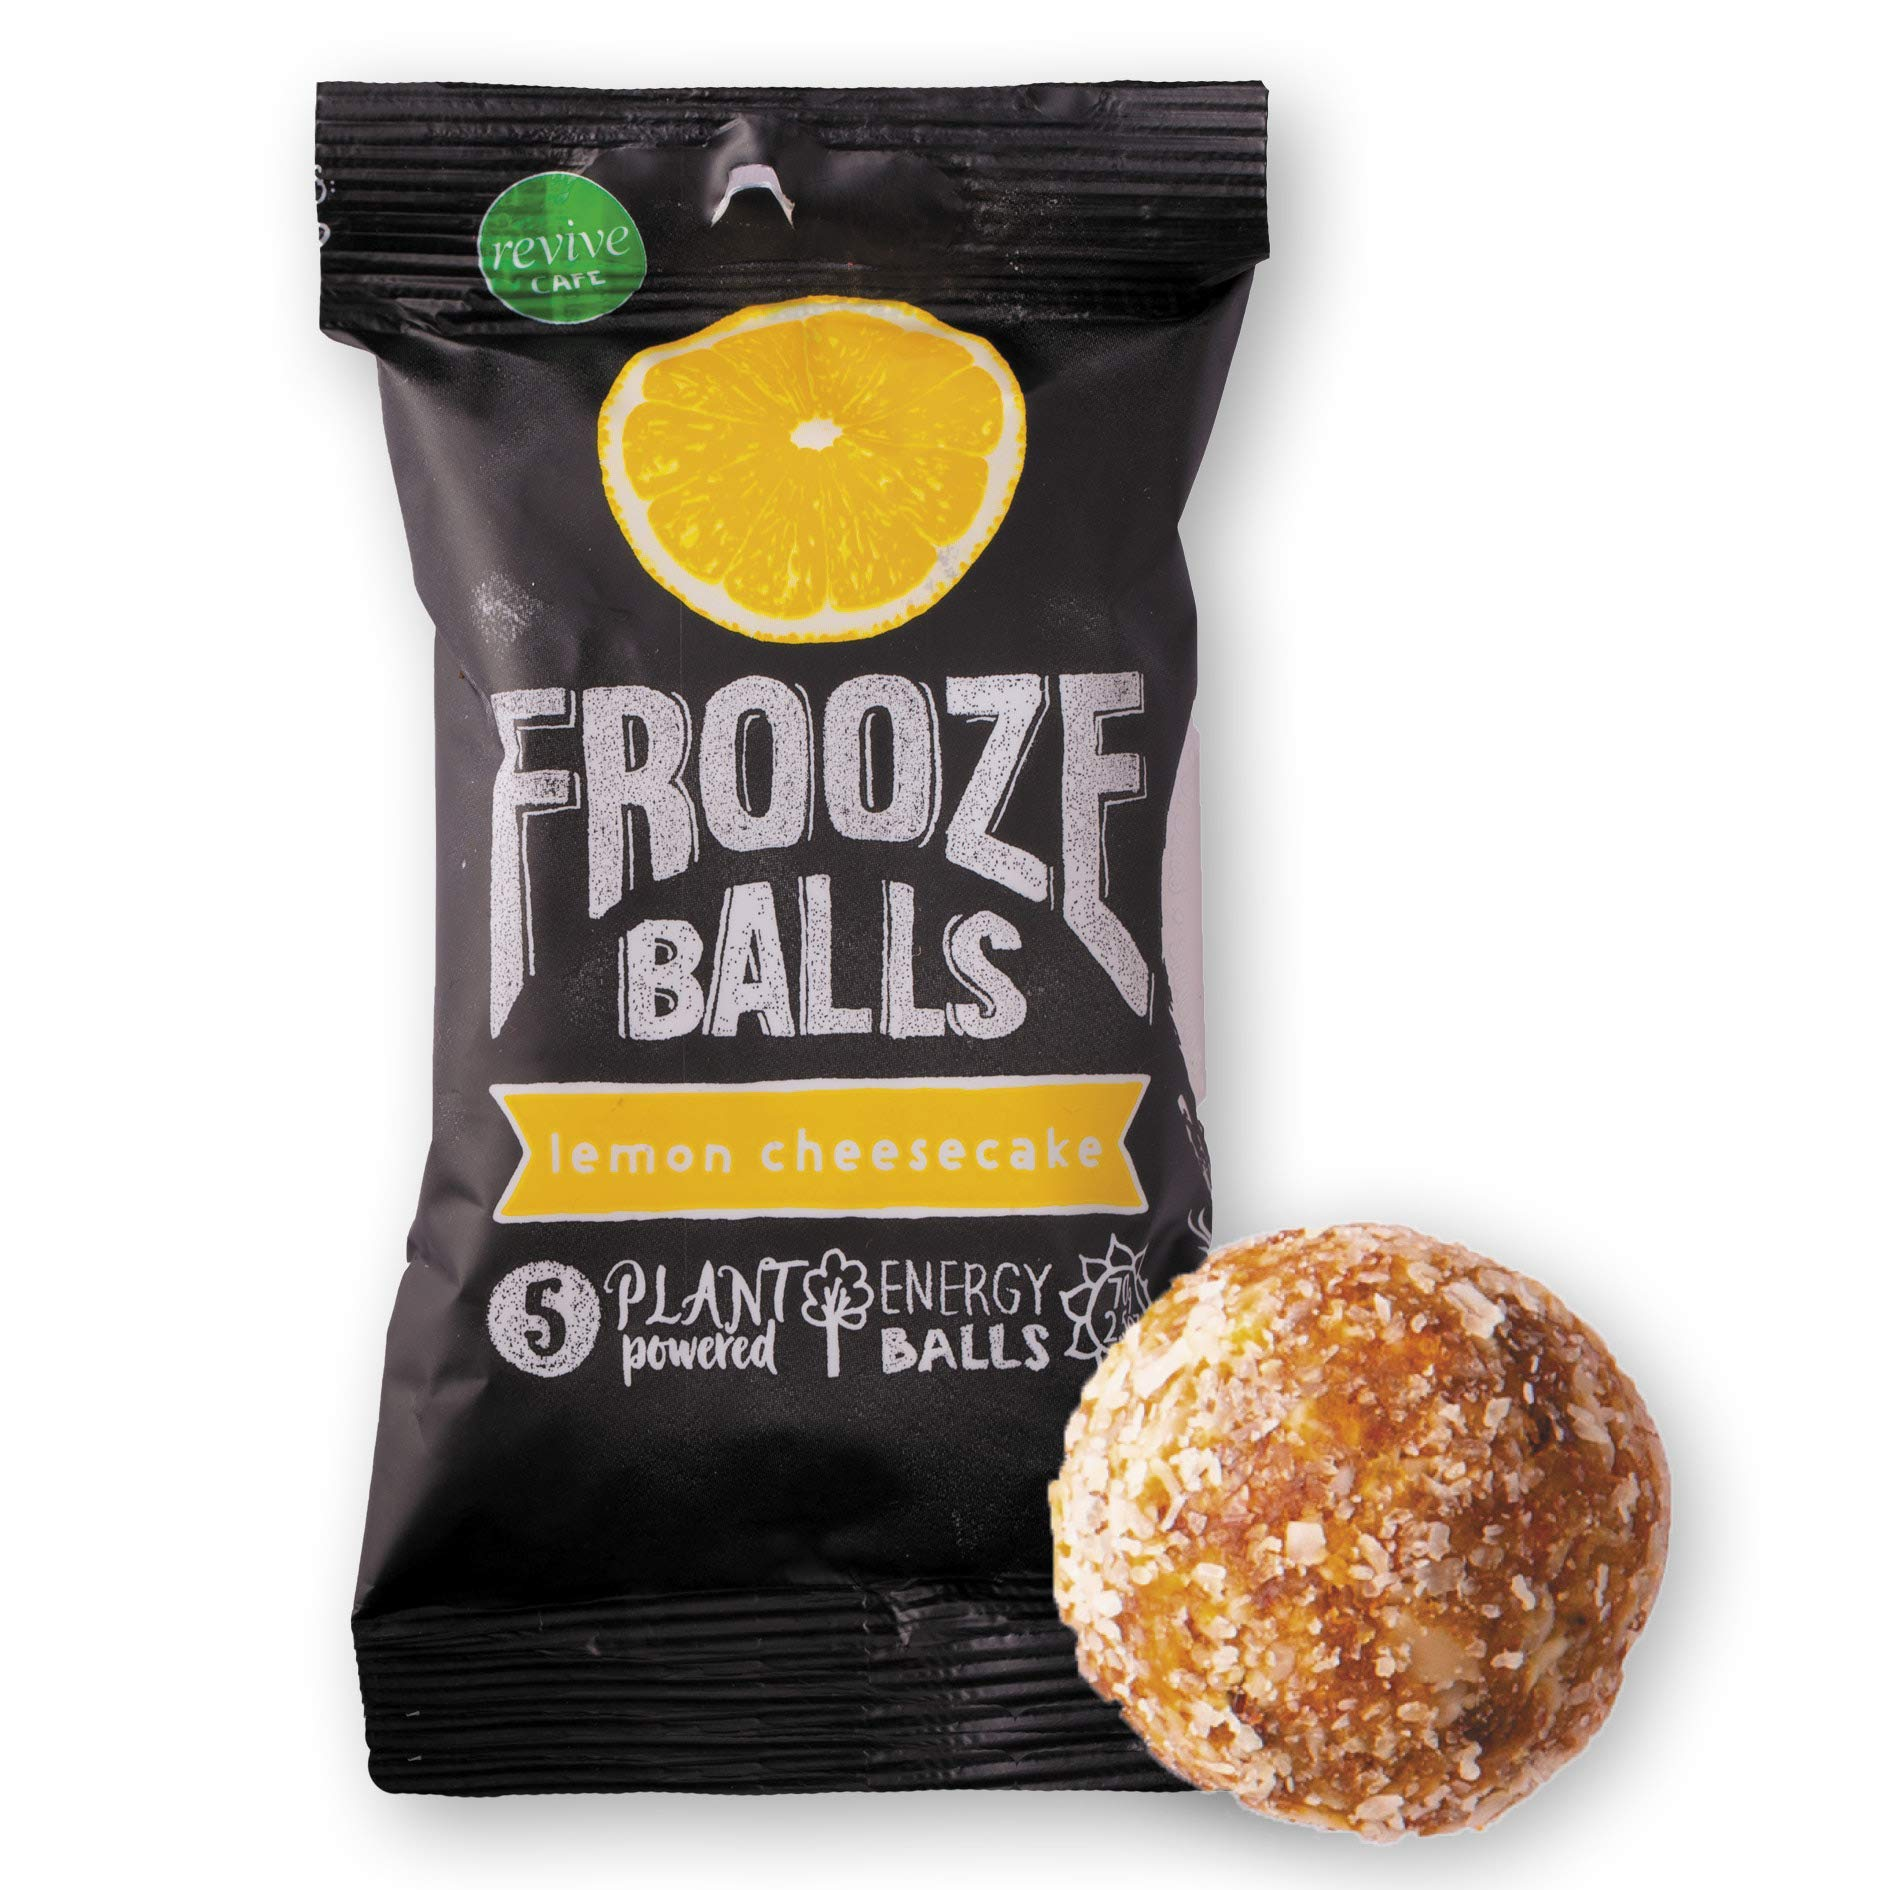 Frooze Balls Plant Protein Powered Fruit & Nut Energy Balls, Lemon Cheesecake (Pack of 8) Each Pack Has 5 Balls!